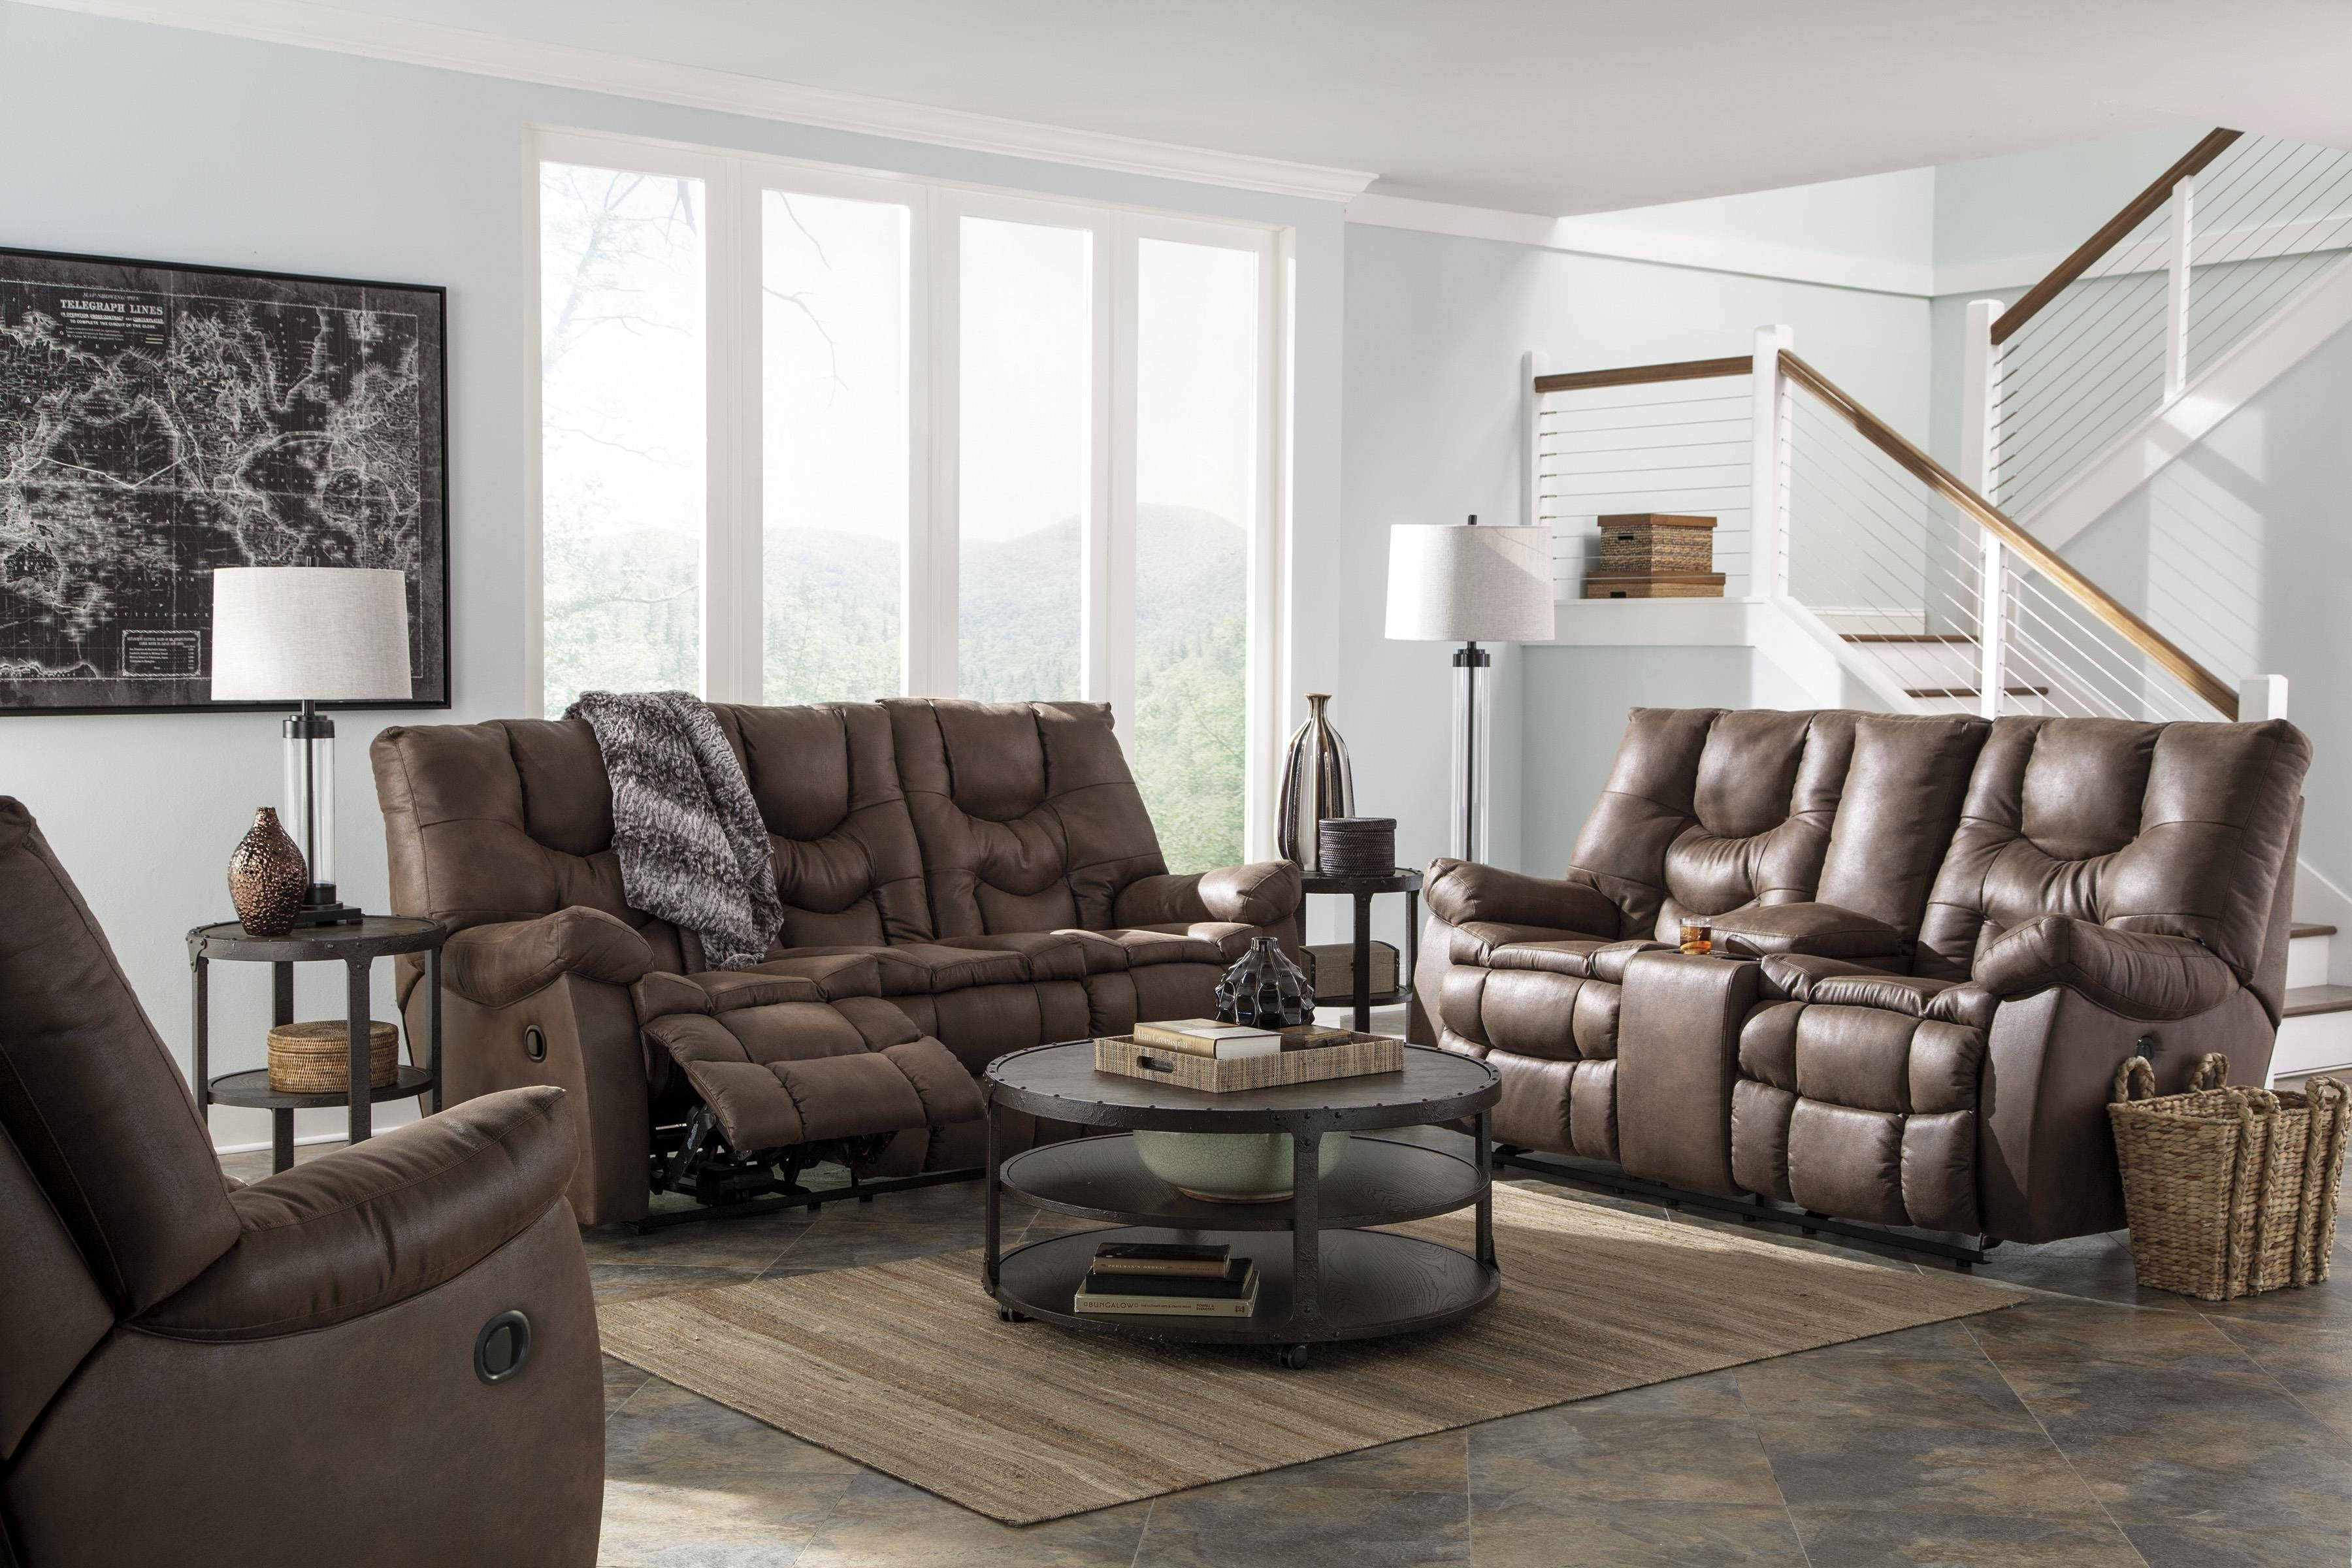 Decor: Fascinating Benchcraft Sofa With Luxury Shapes For Living throughout Berkline Sofa Recliner (Image 14 of 30)